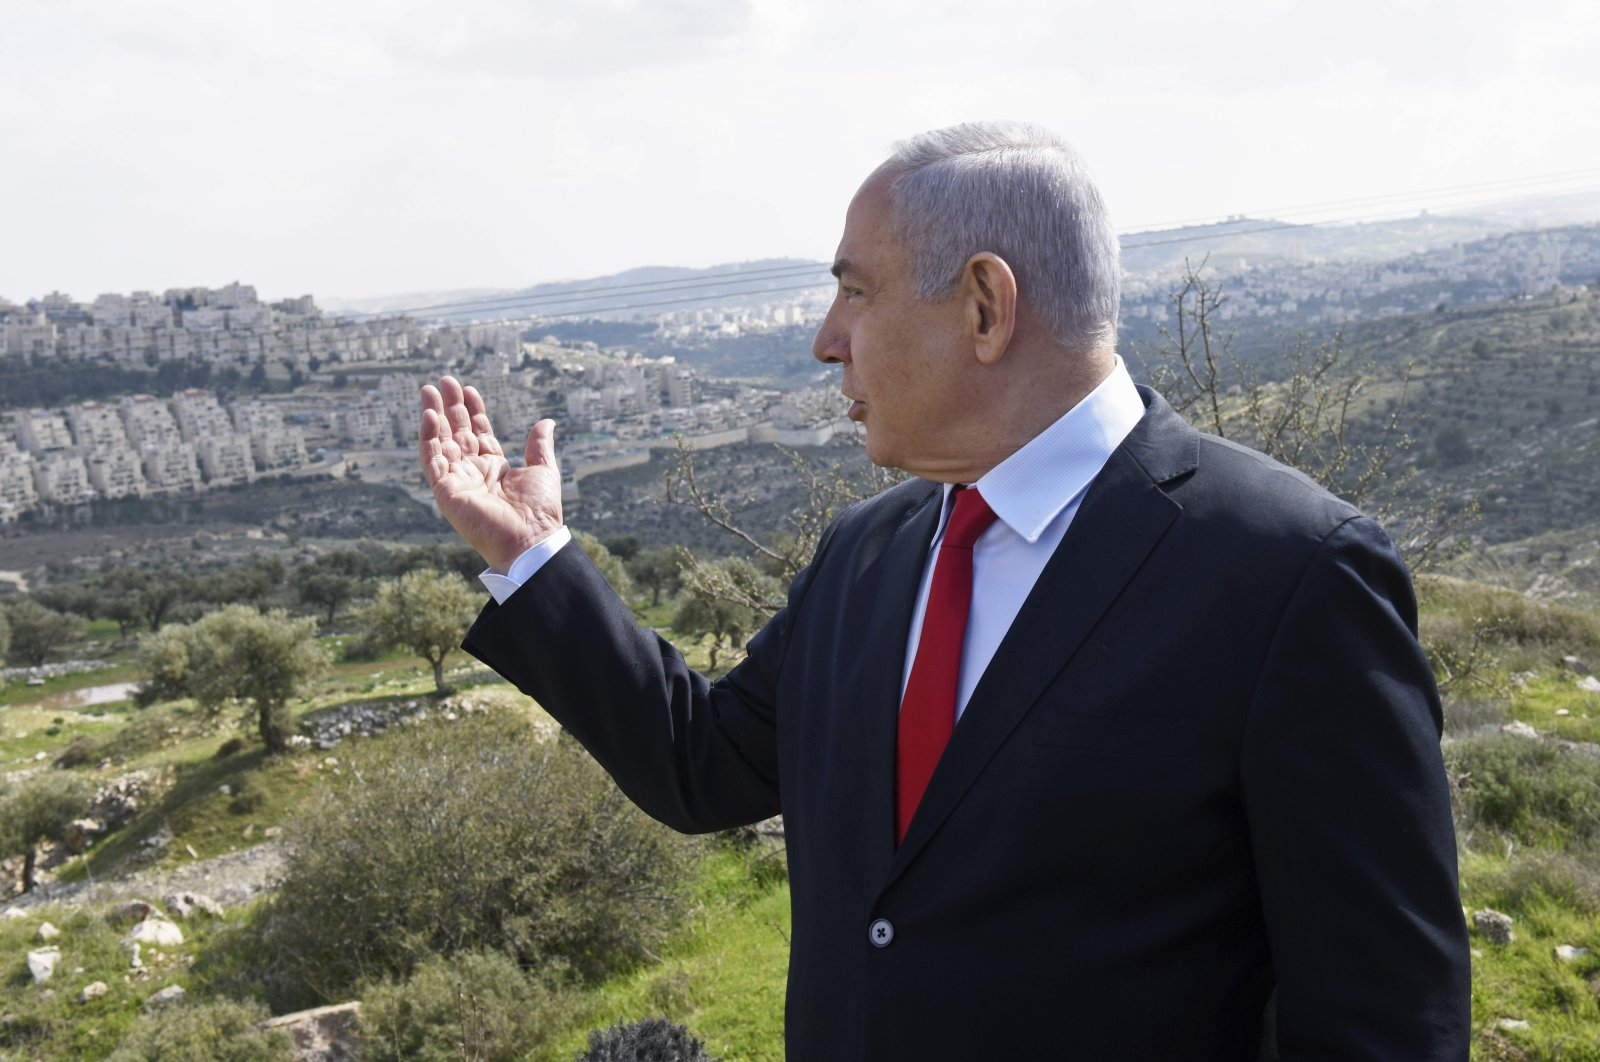 Israeli Prime Minister Benjamin Netanyahu visits the area where a new neighborhood is to be built in the east Jerusalem settlement of Har Homa, Israel, Feb. 20, 2020. (AP Photo)